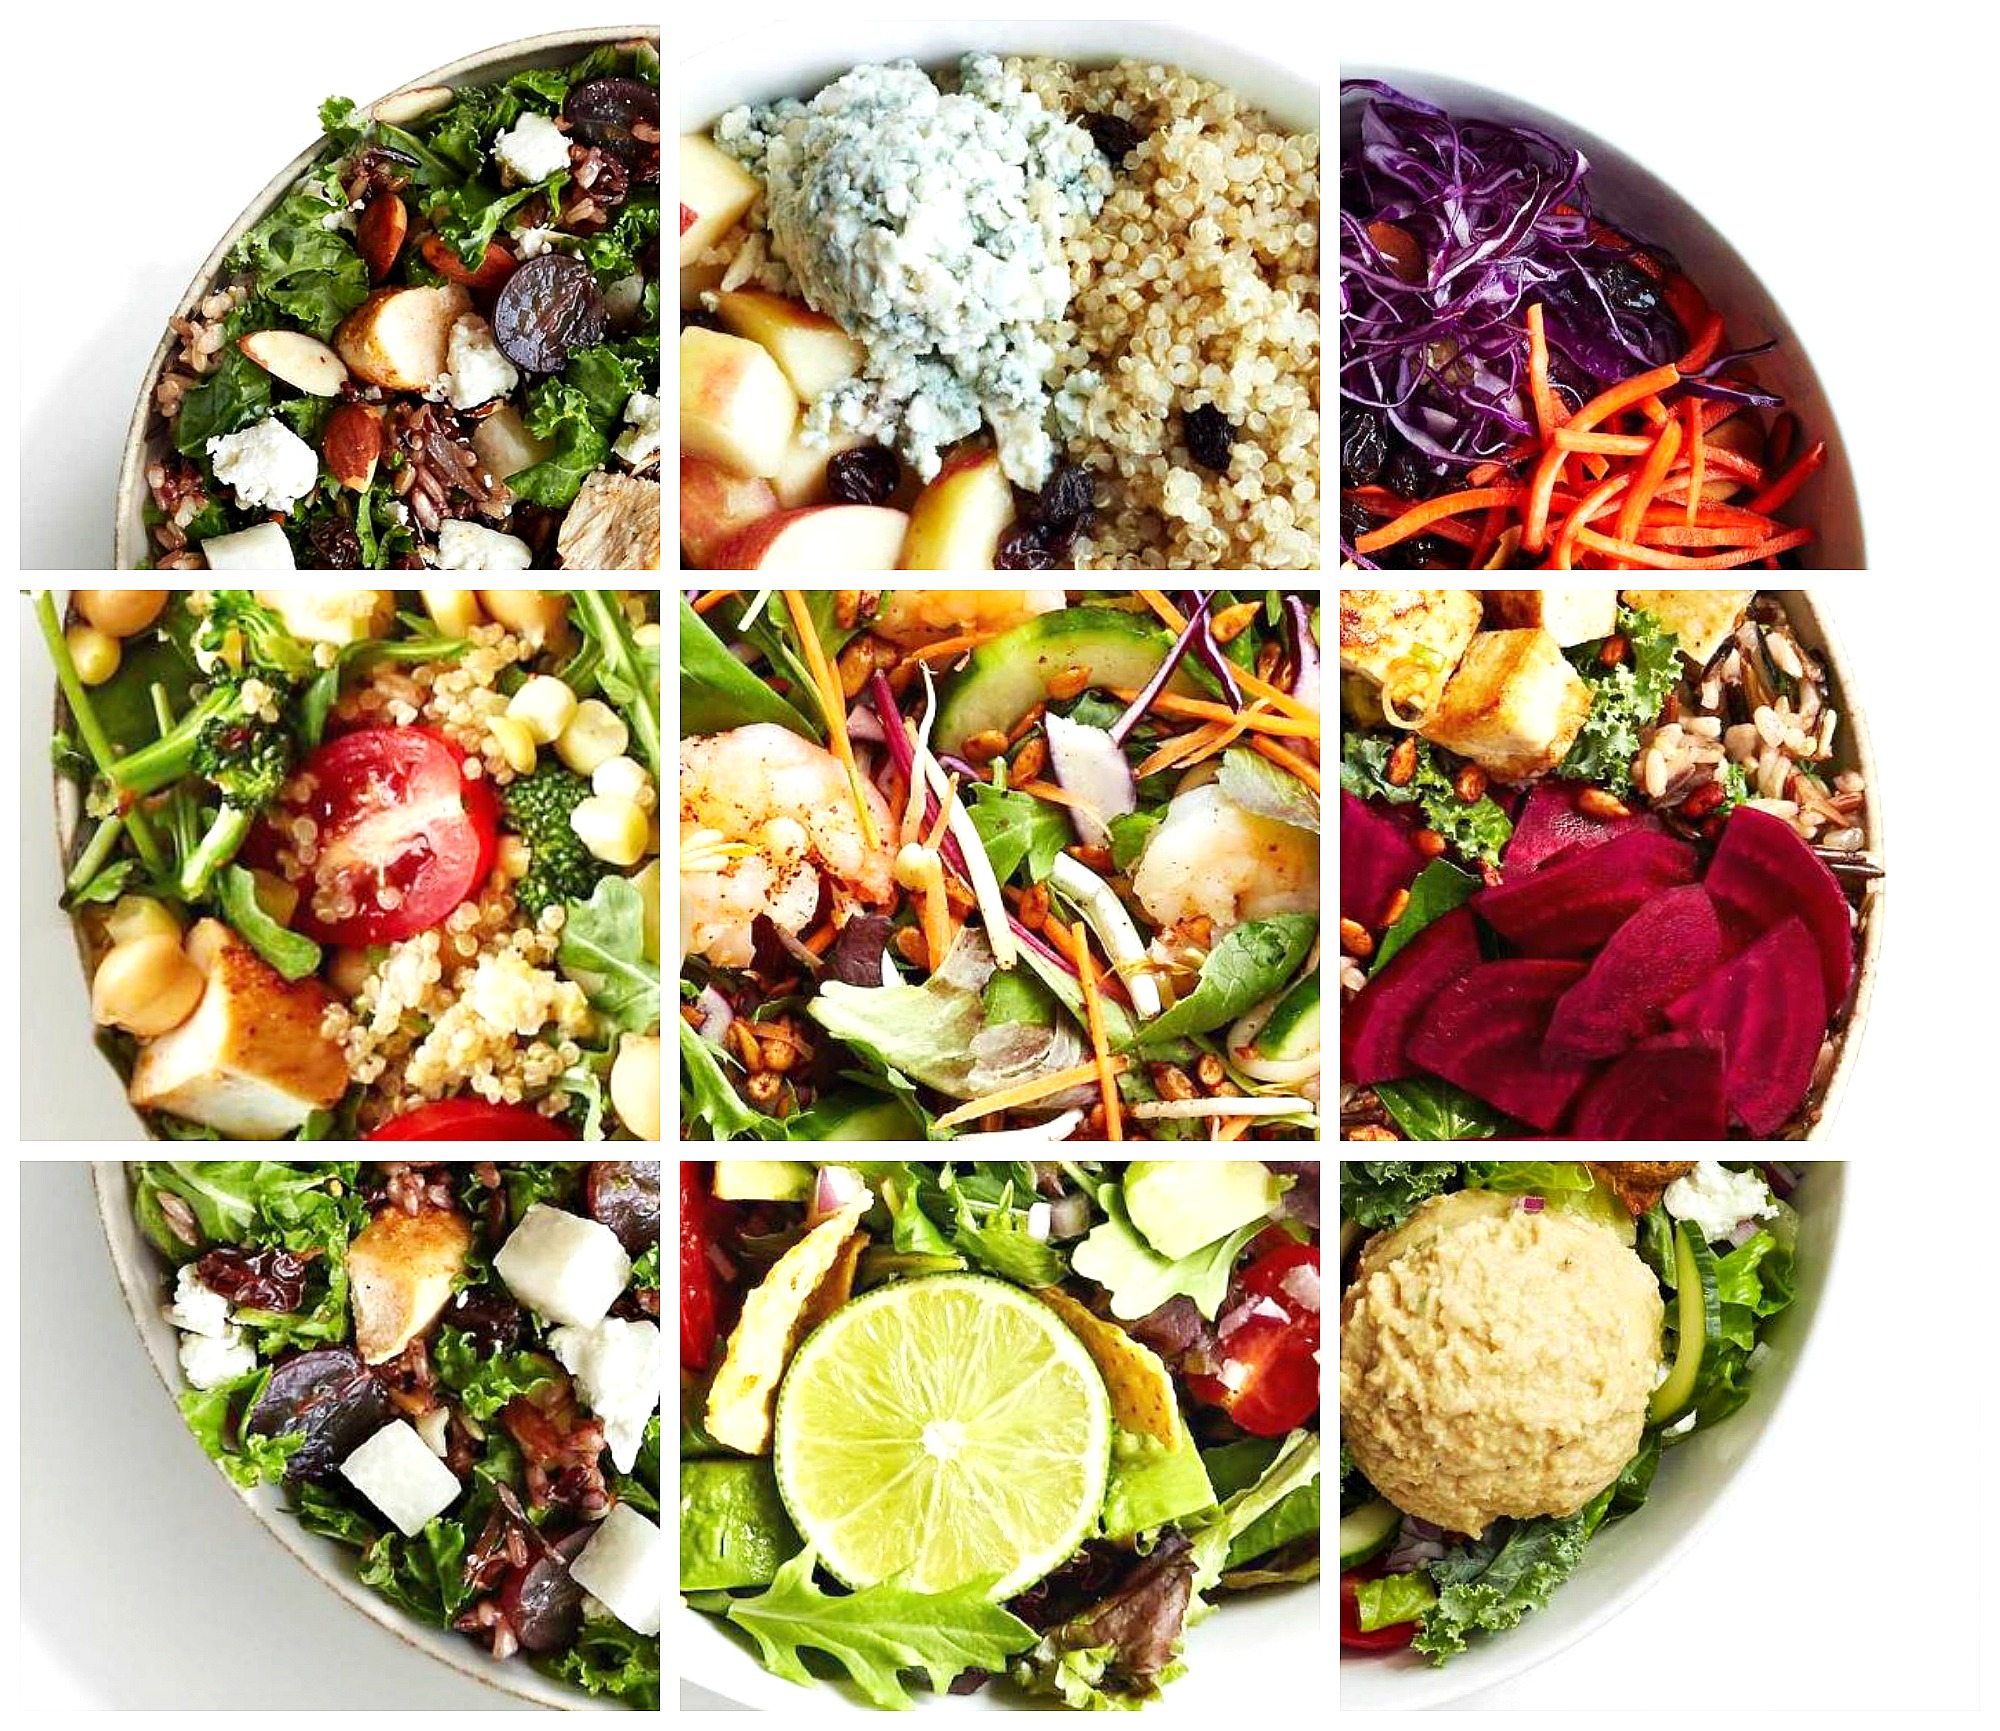 List of all 60+ sweetgreen's salads, warm bowls, and seasonal menu items